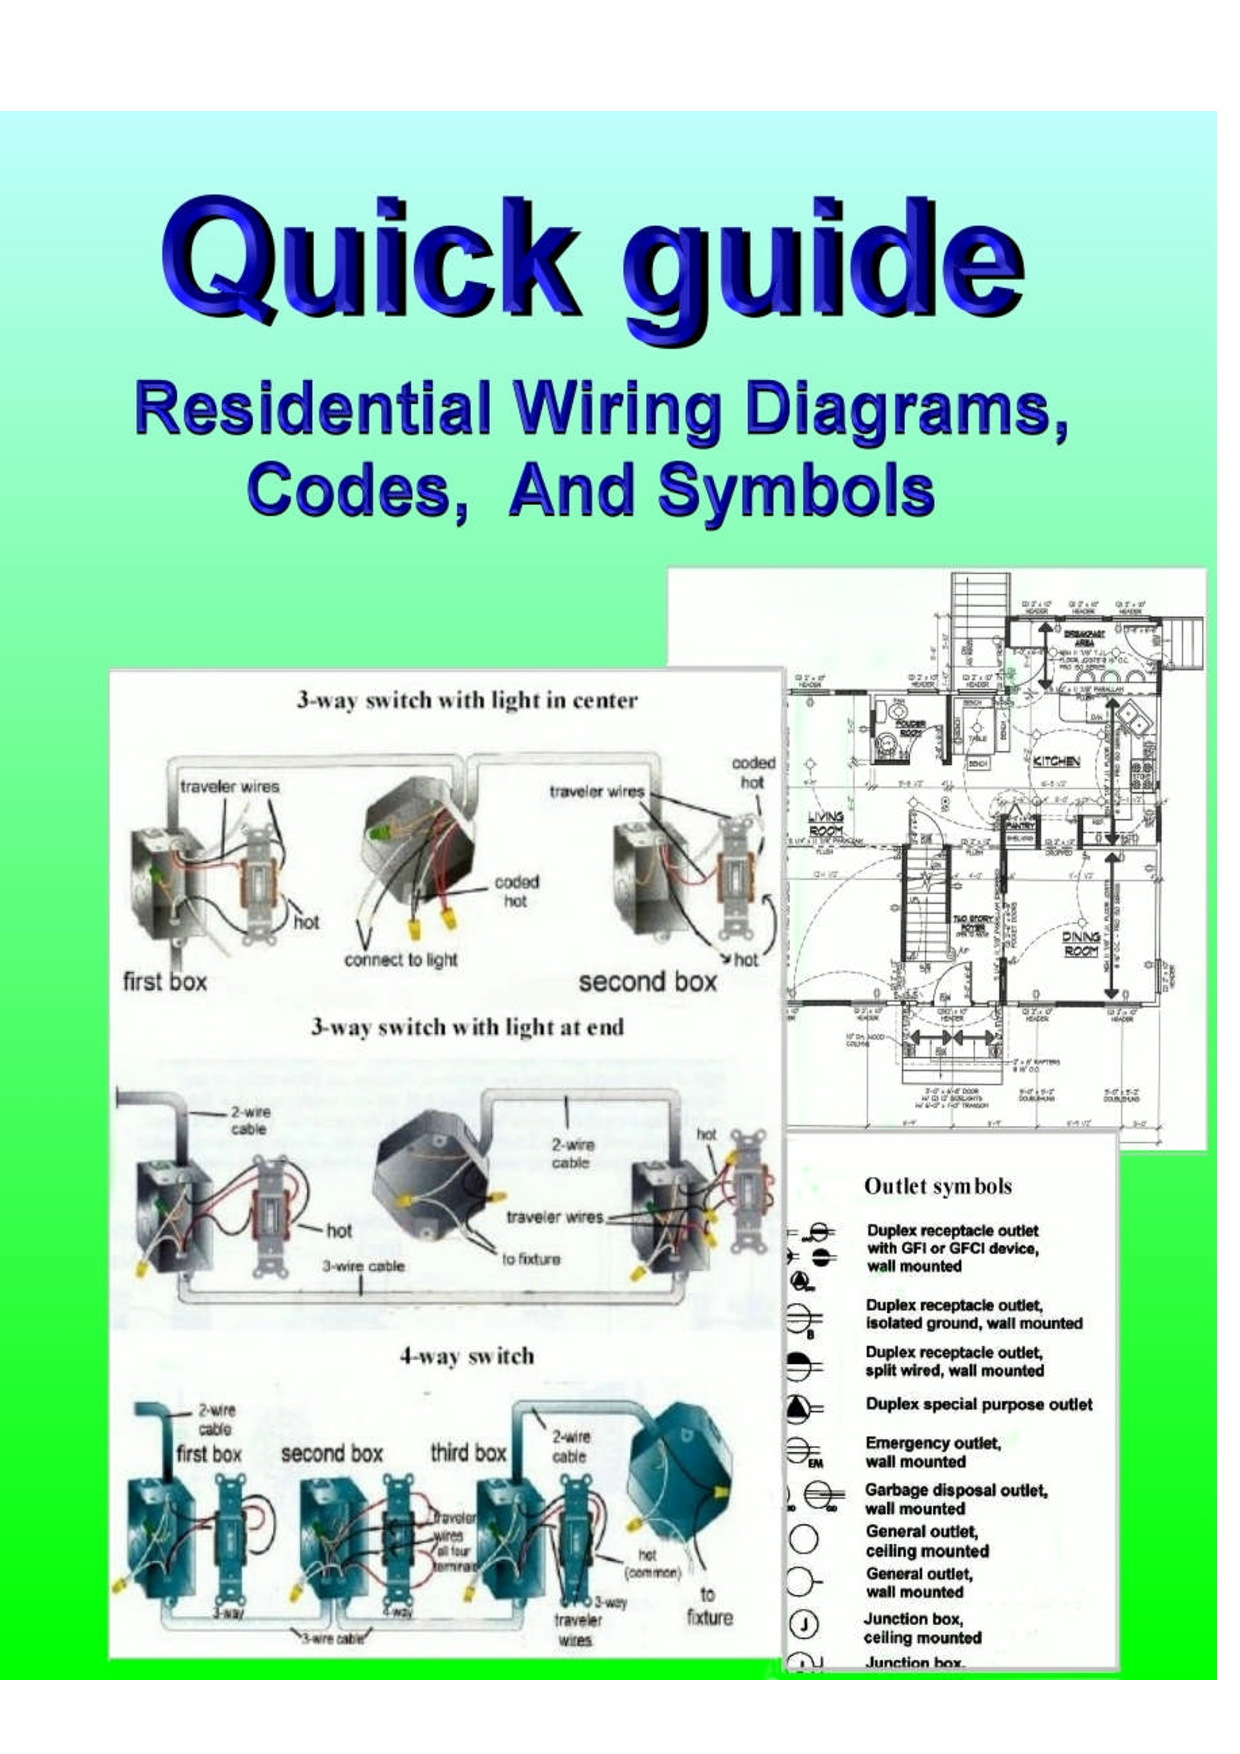 Home electrical wiring diagrams informational pinterest home electrical wiring diagrams asfbconference2016 Images